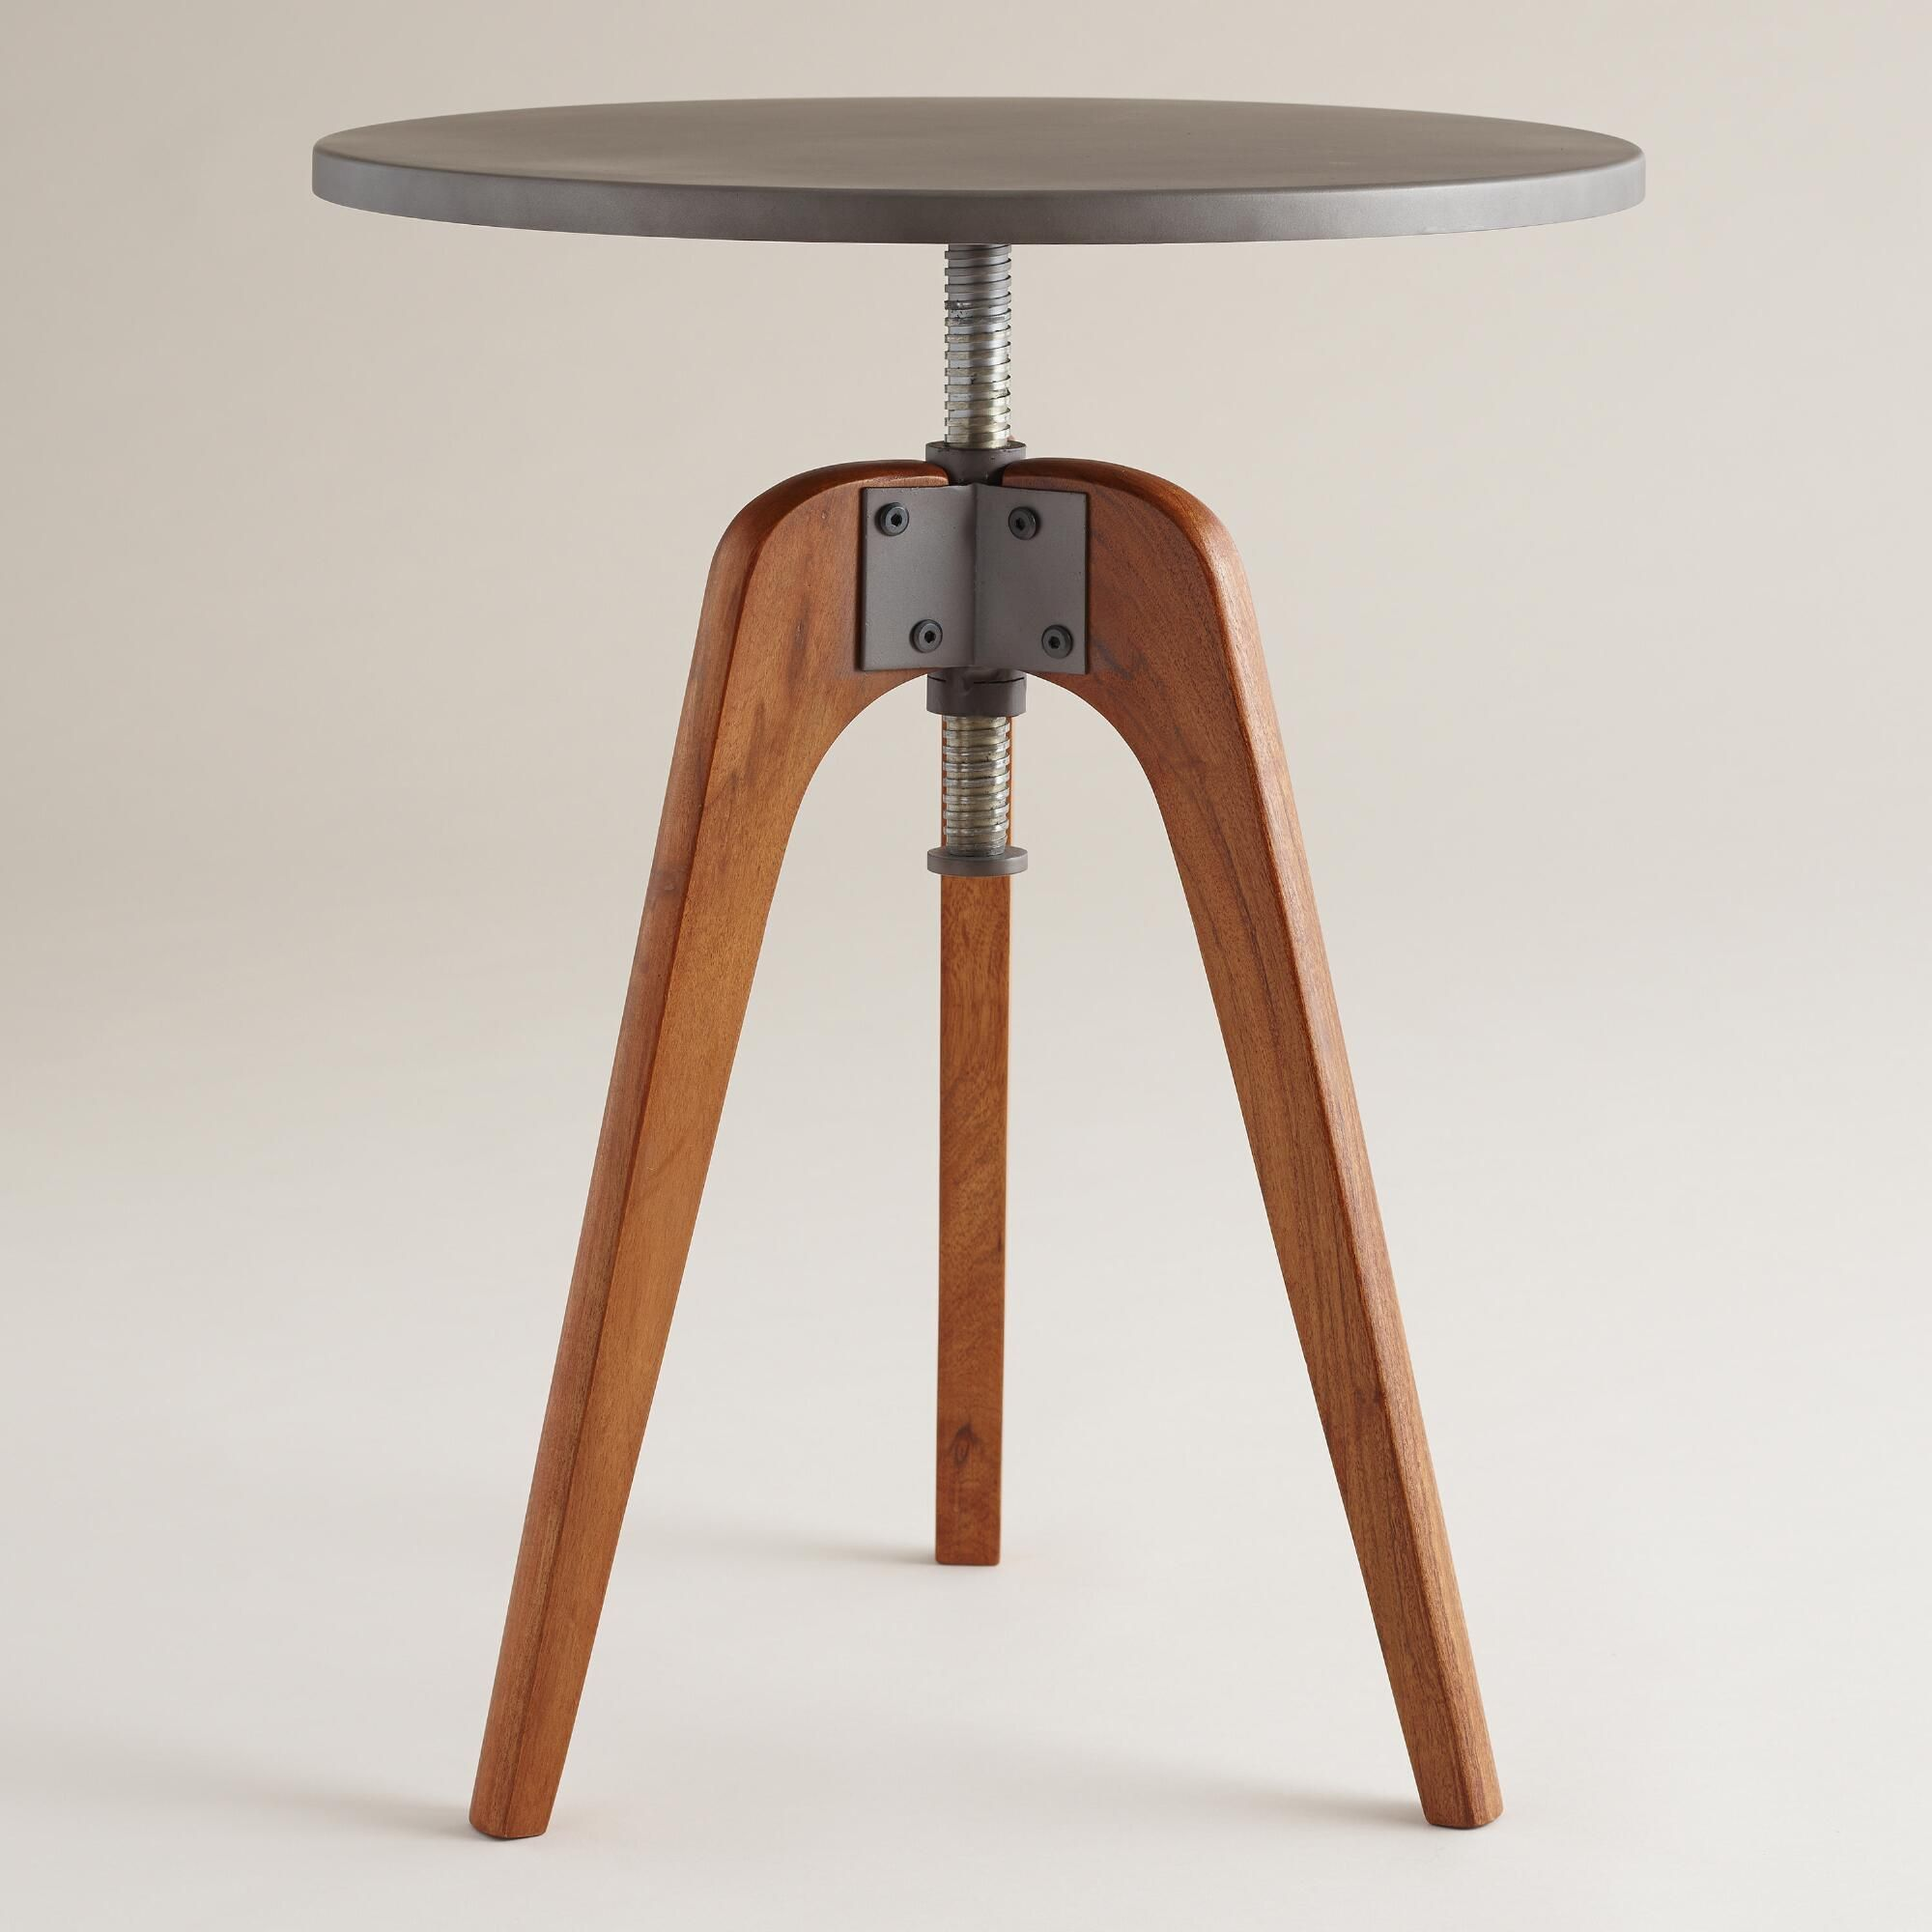 Wood And Metal Uriah Adjustable Accent Table: A Mix Of Industrial And Mid-century, Our Accent Table